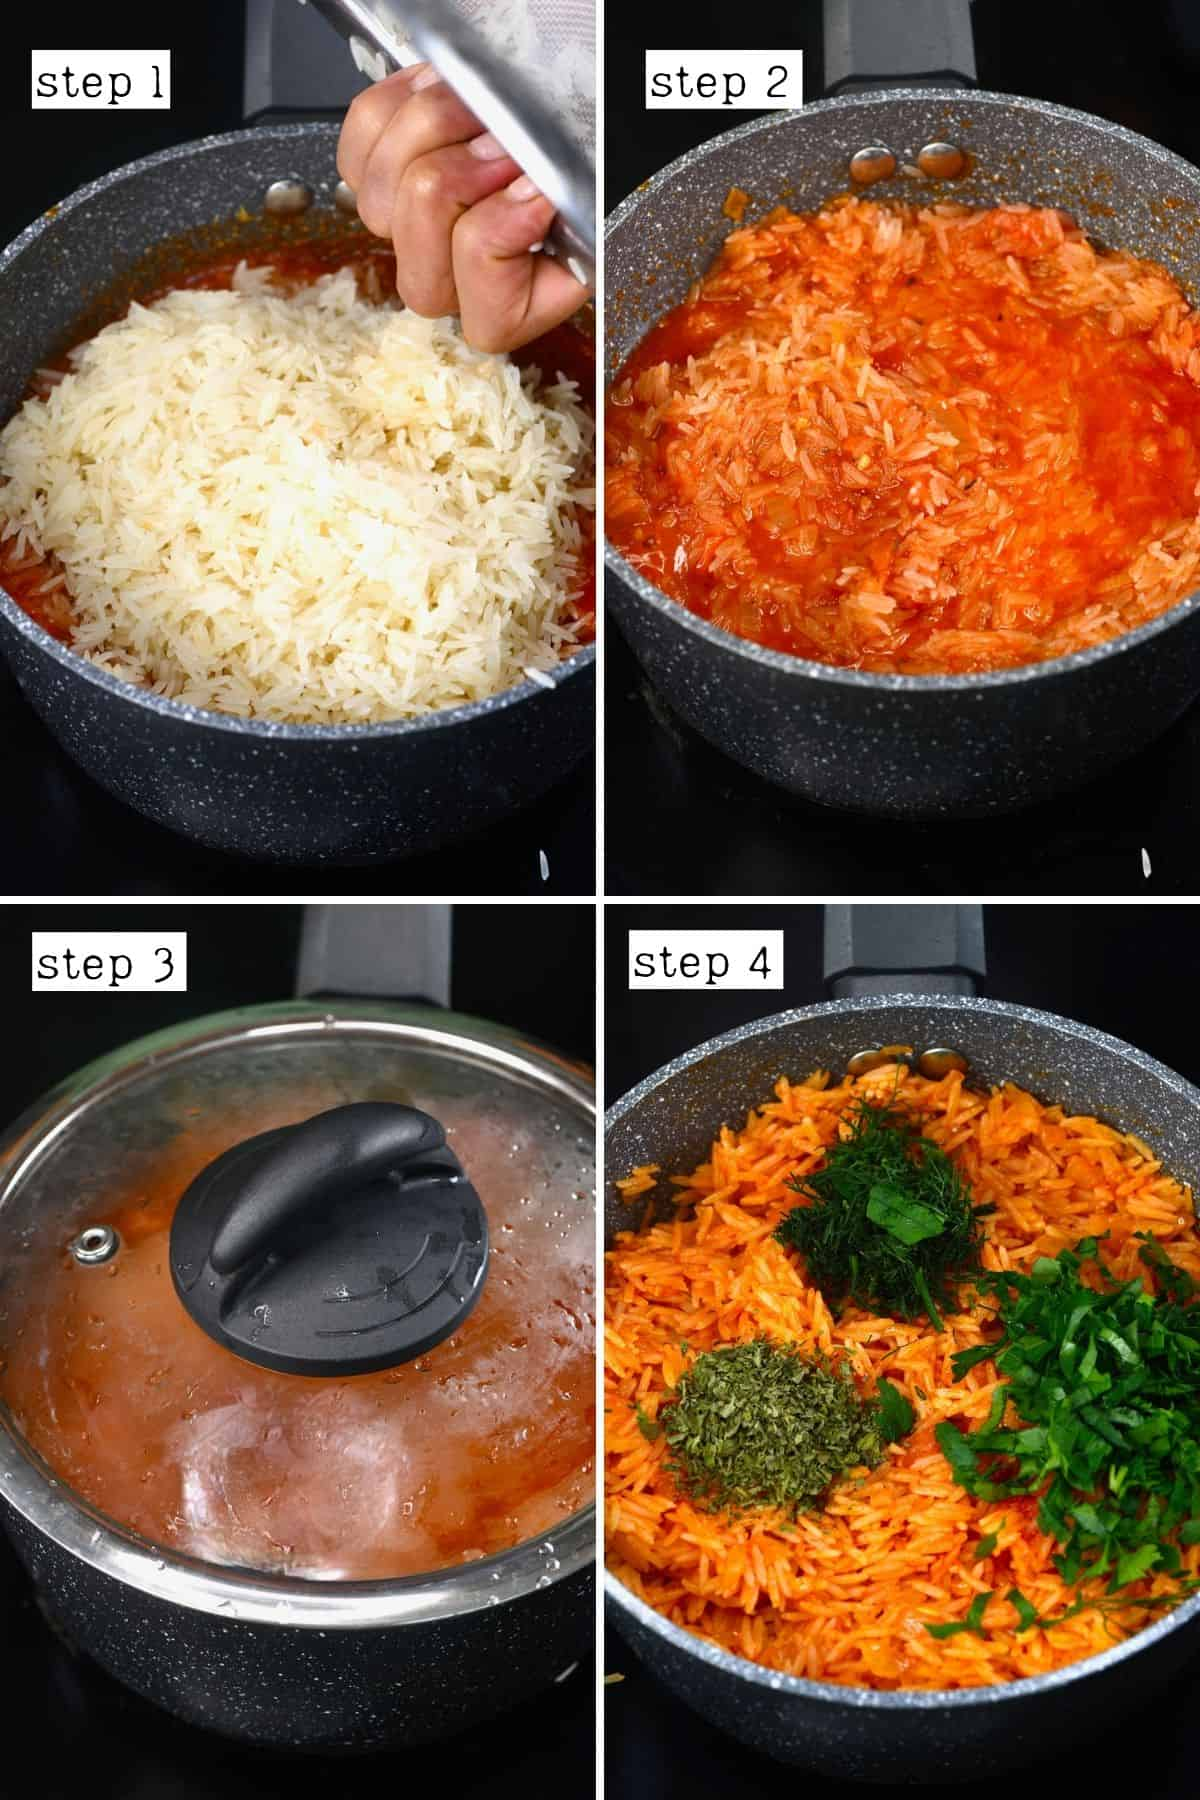 Steps for cooking rice for stuffed tomatoes